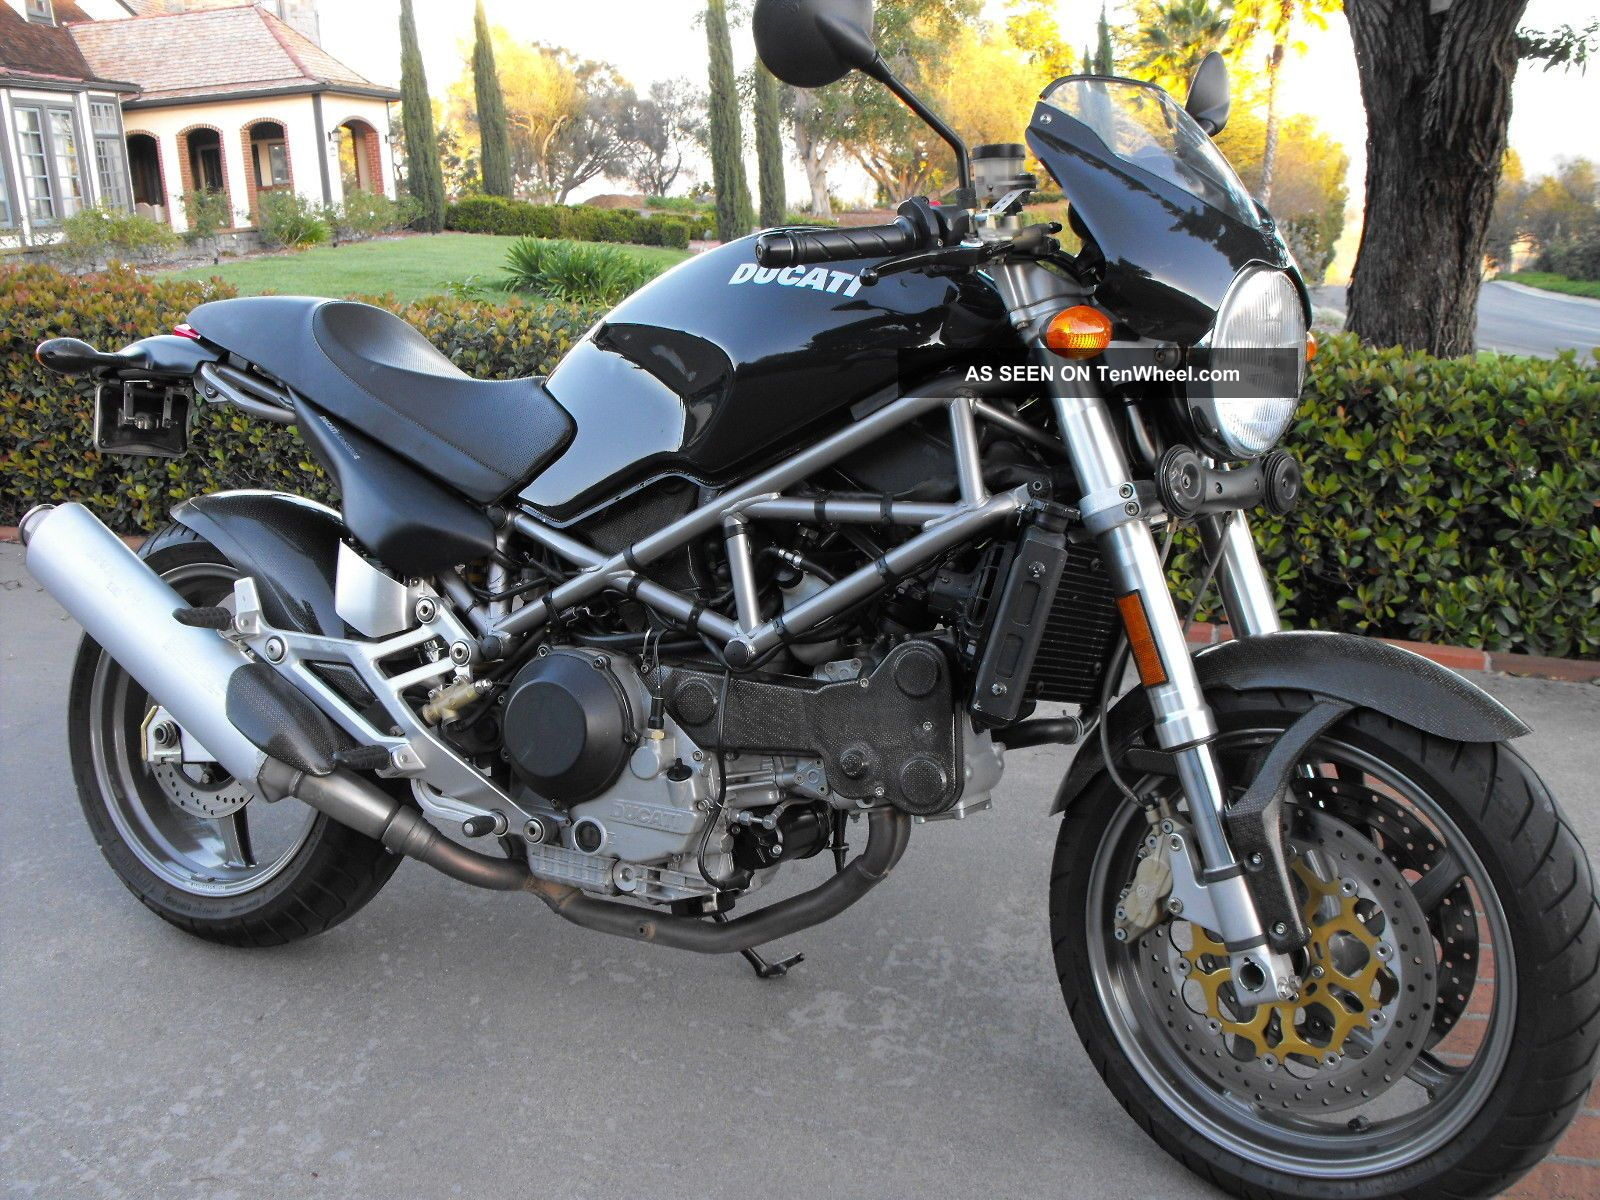 Ducati Monster 916 Ms4 Featured In The 2002 Warner Bros.  Catwoman Movie And Was Monster photo